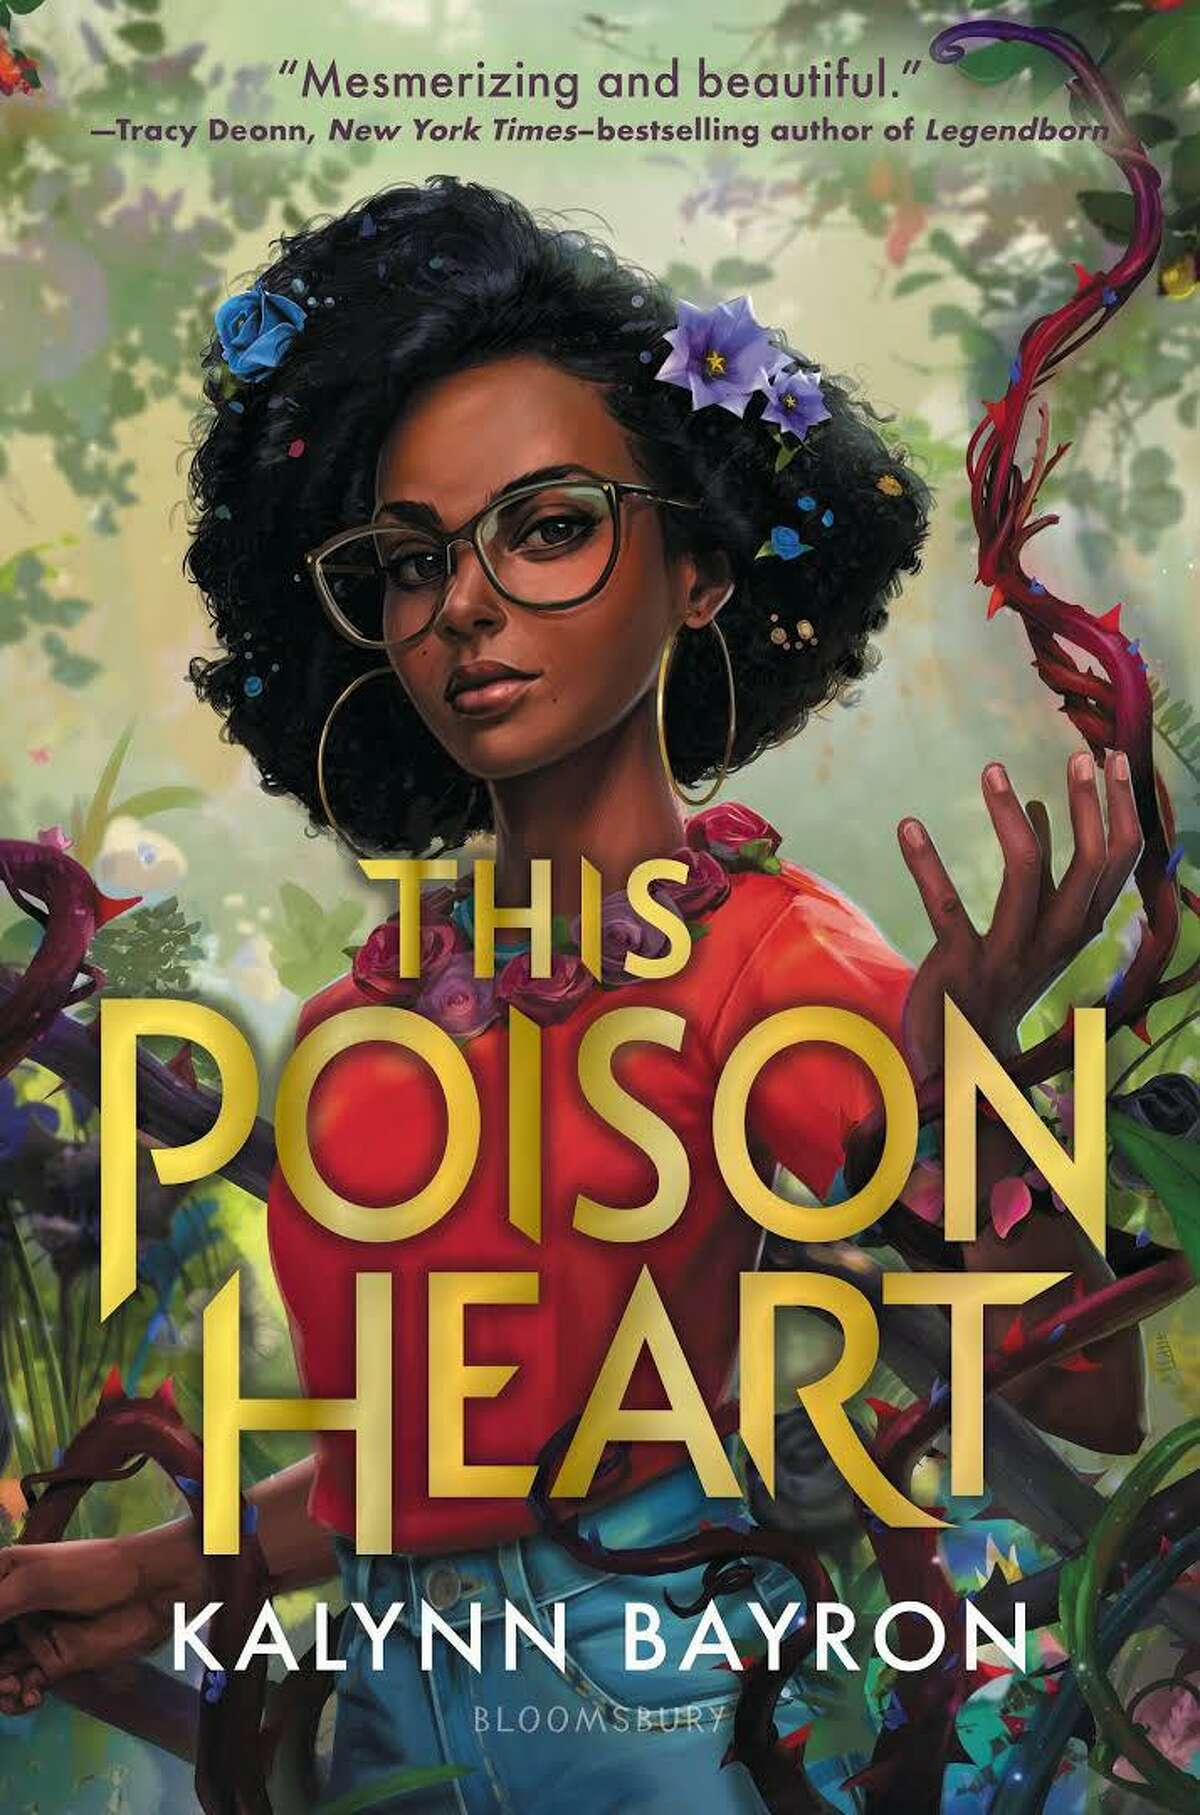 """San Antonio writer Kalynn Bayron's latest YA novel, """"This Poison Heart,"""" is about a teenager with mysterious botanical abilities."""